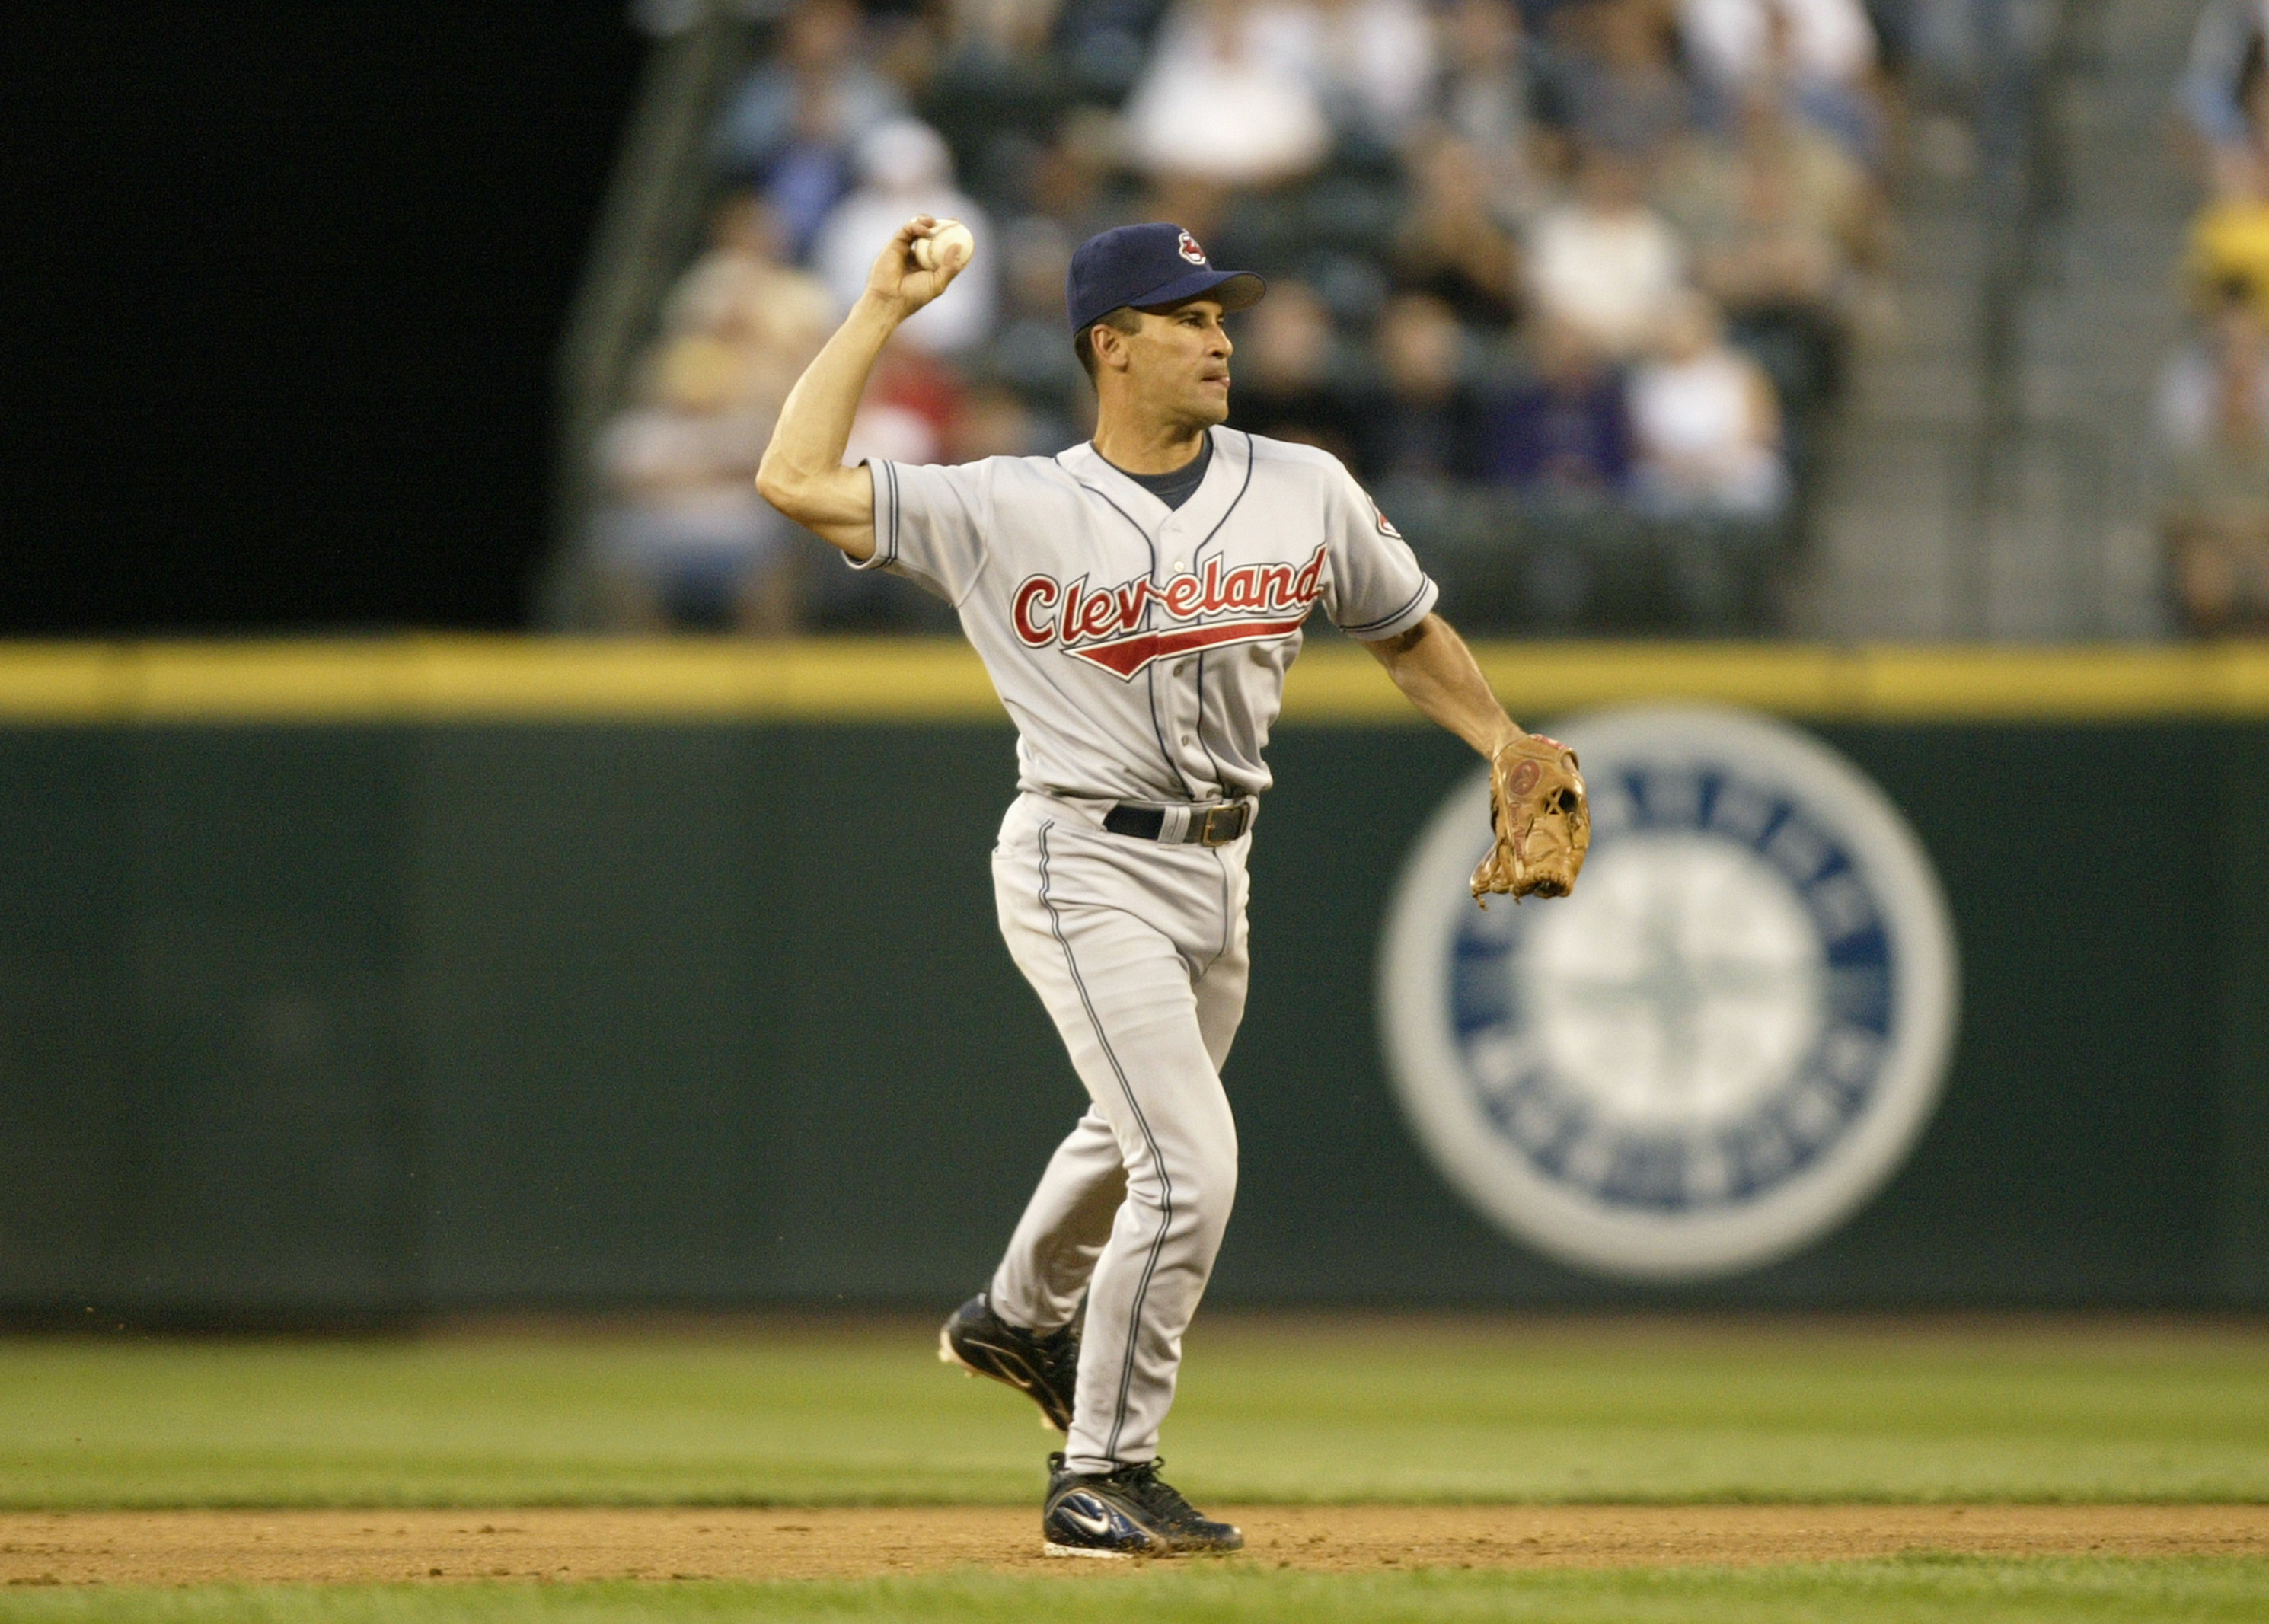 SEATTLE - JULY 15:  Omar Vizquel#13 of the Cleveland Indians throws the ball during the game against the Seattle Mariners on July 15, 2004 at Safeco Field in Seattle, Washington.  The Mariners defeated the Indians 2-1.  (Photo by Otto Greule Jr/Getty Imag